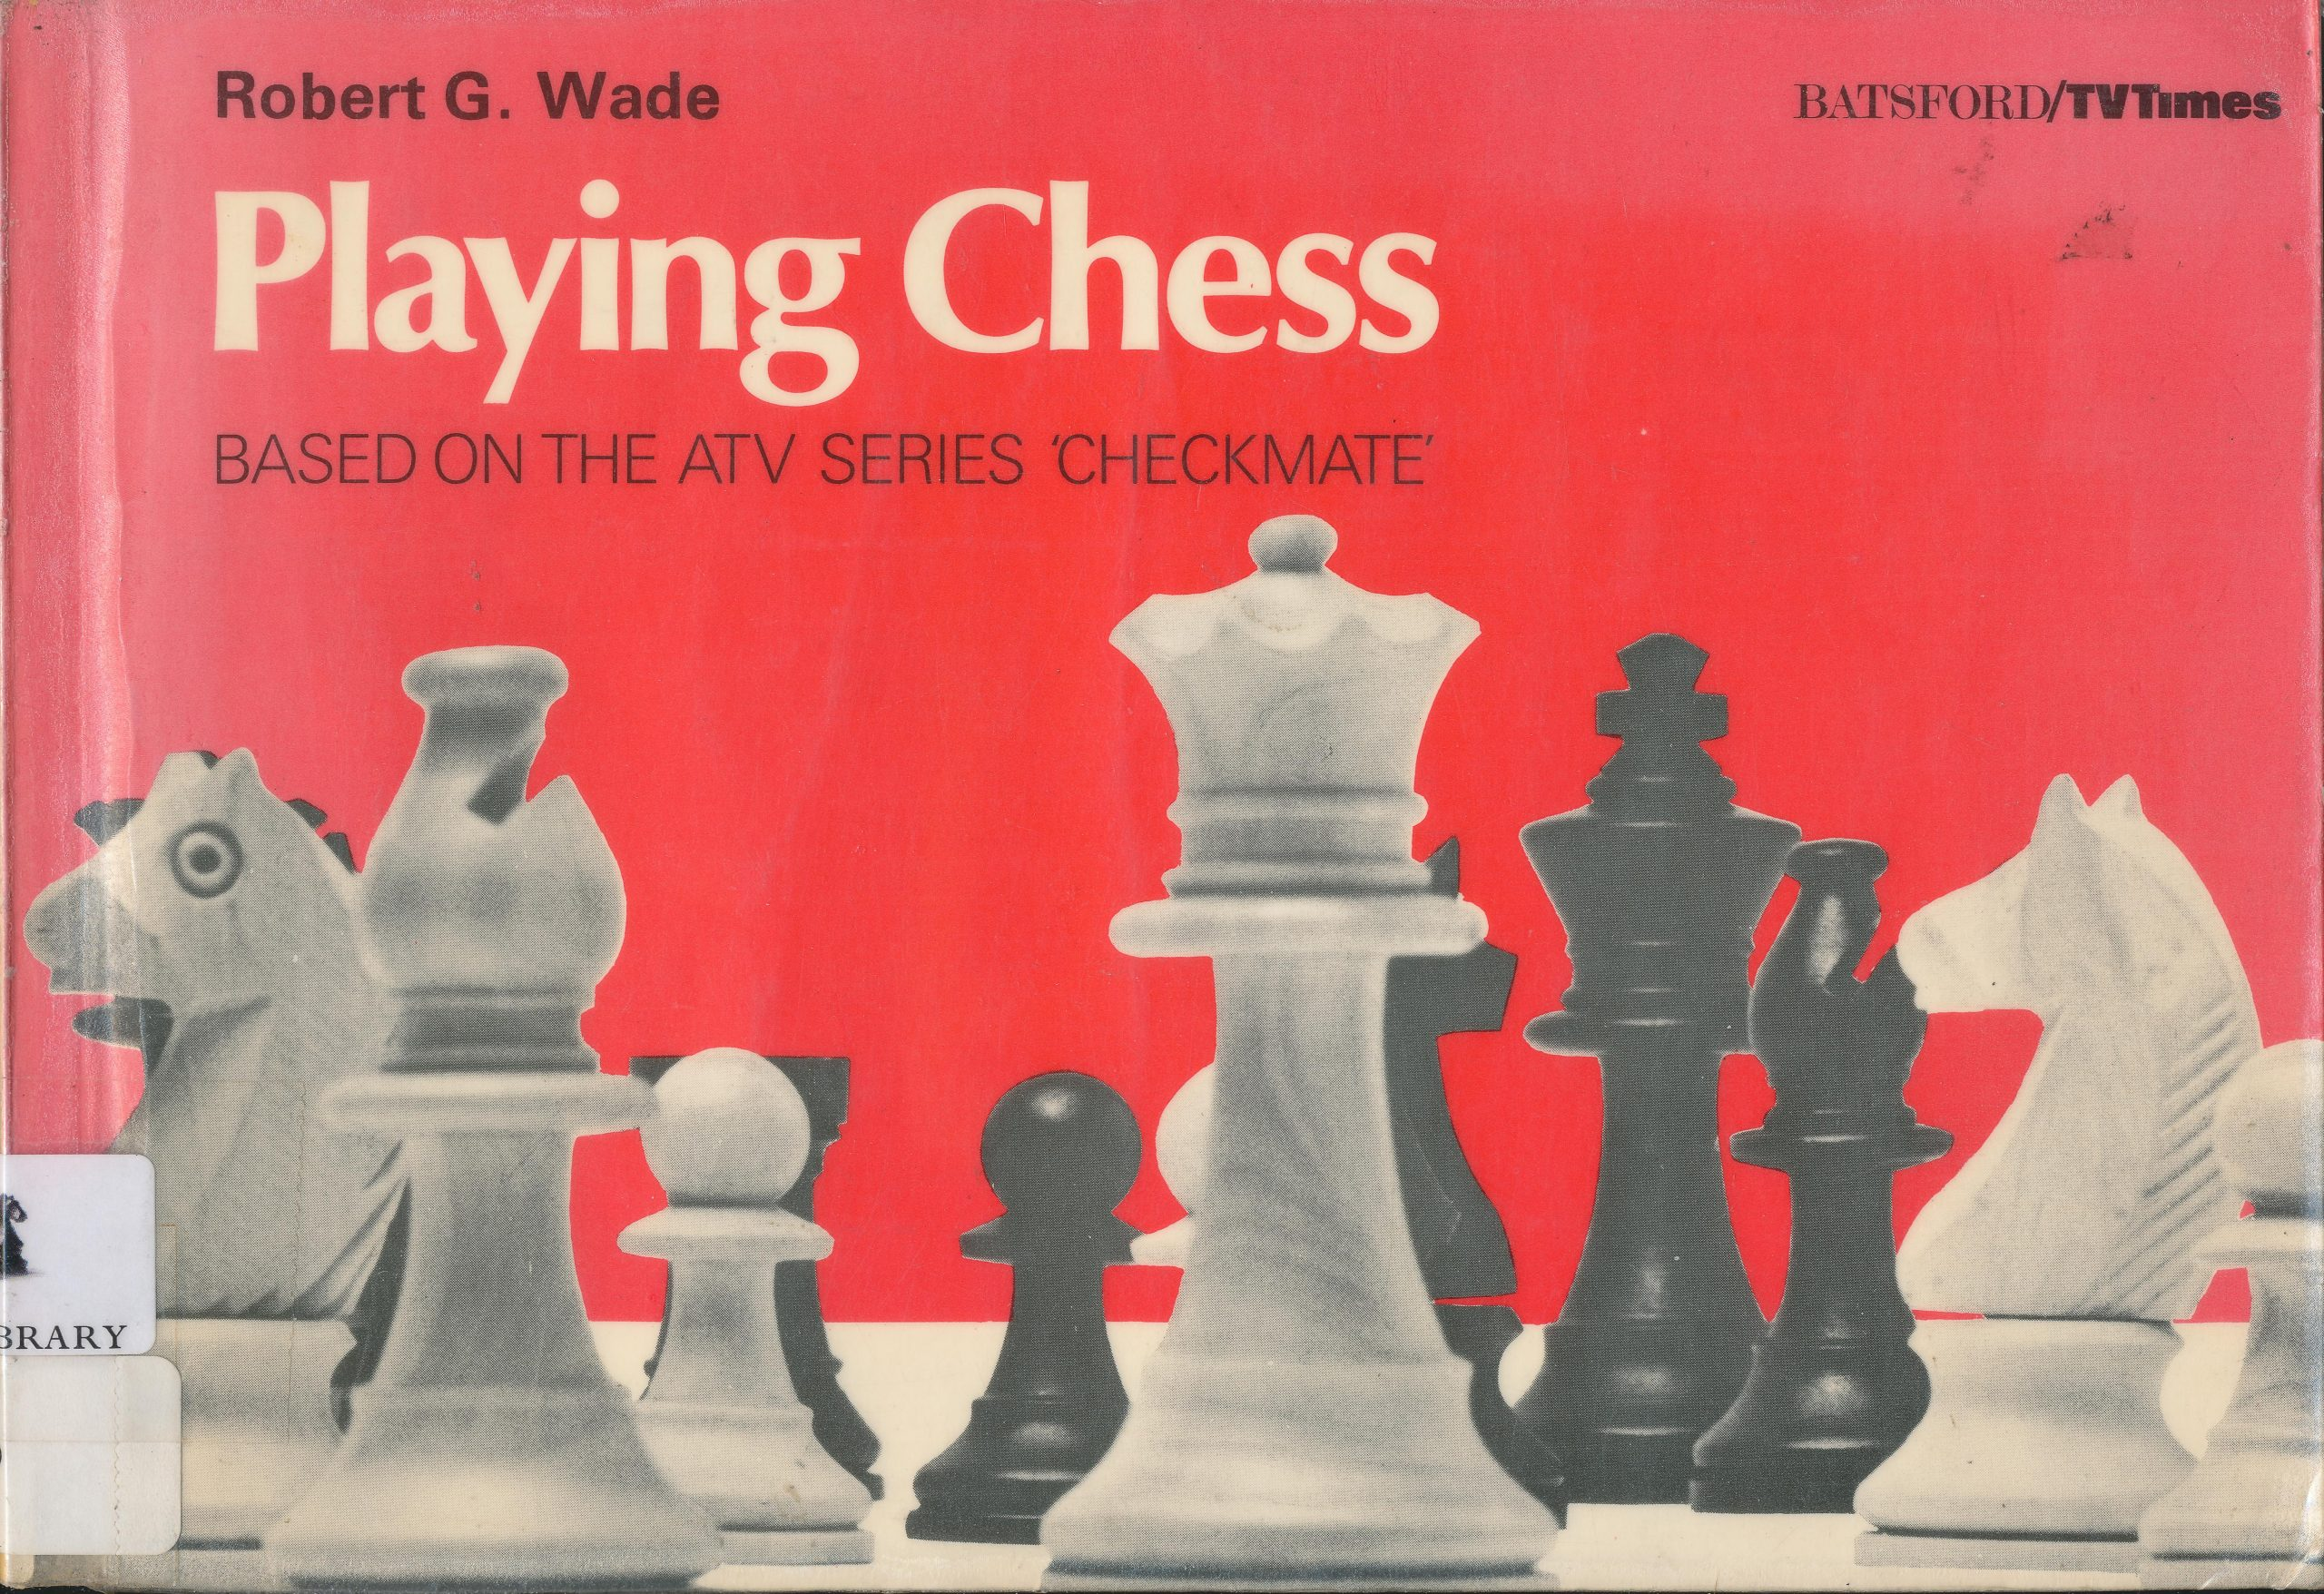 Playing Chess, RG Wade, Batsford/TVTimes, 1974